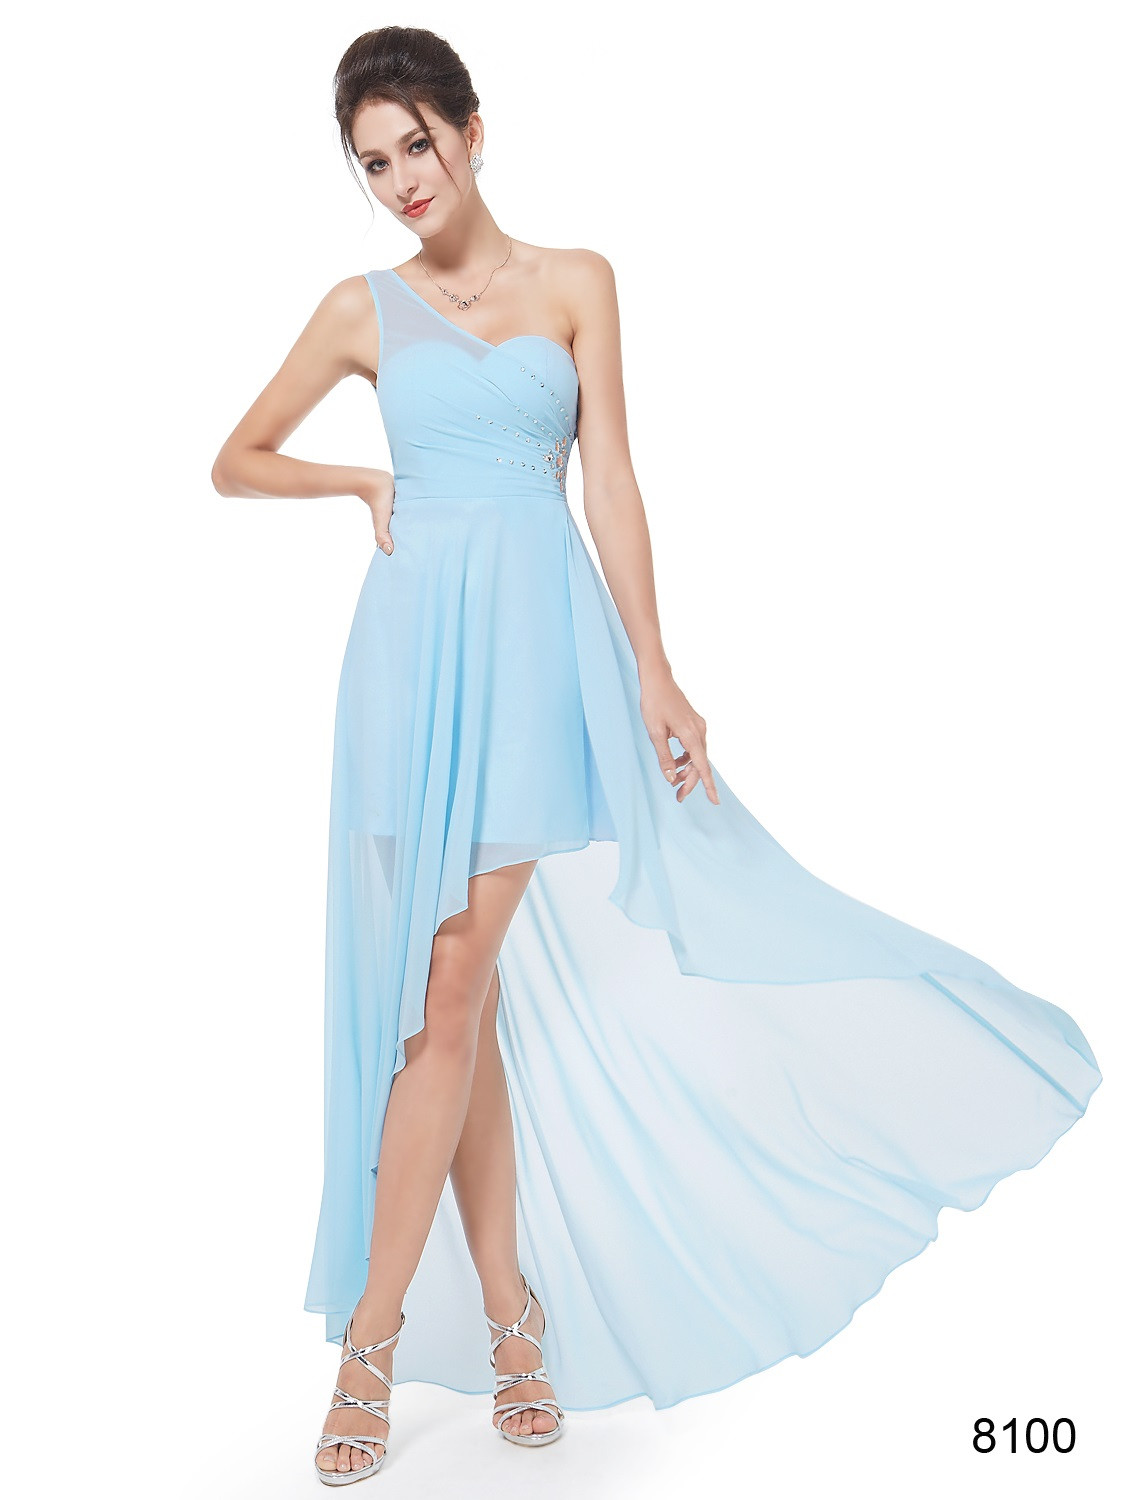 One Shoulder Rhinestones Baby Blue Chiffon Hi-low Bridesmaid Dress